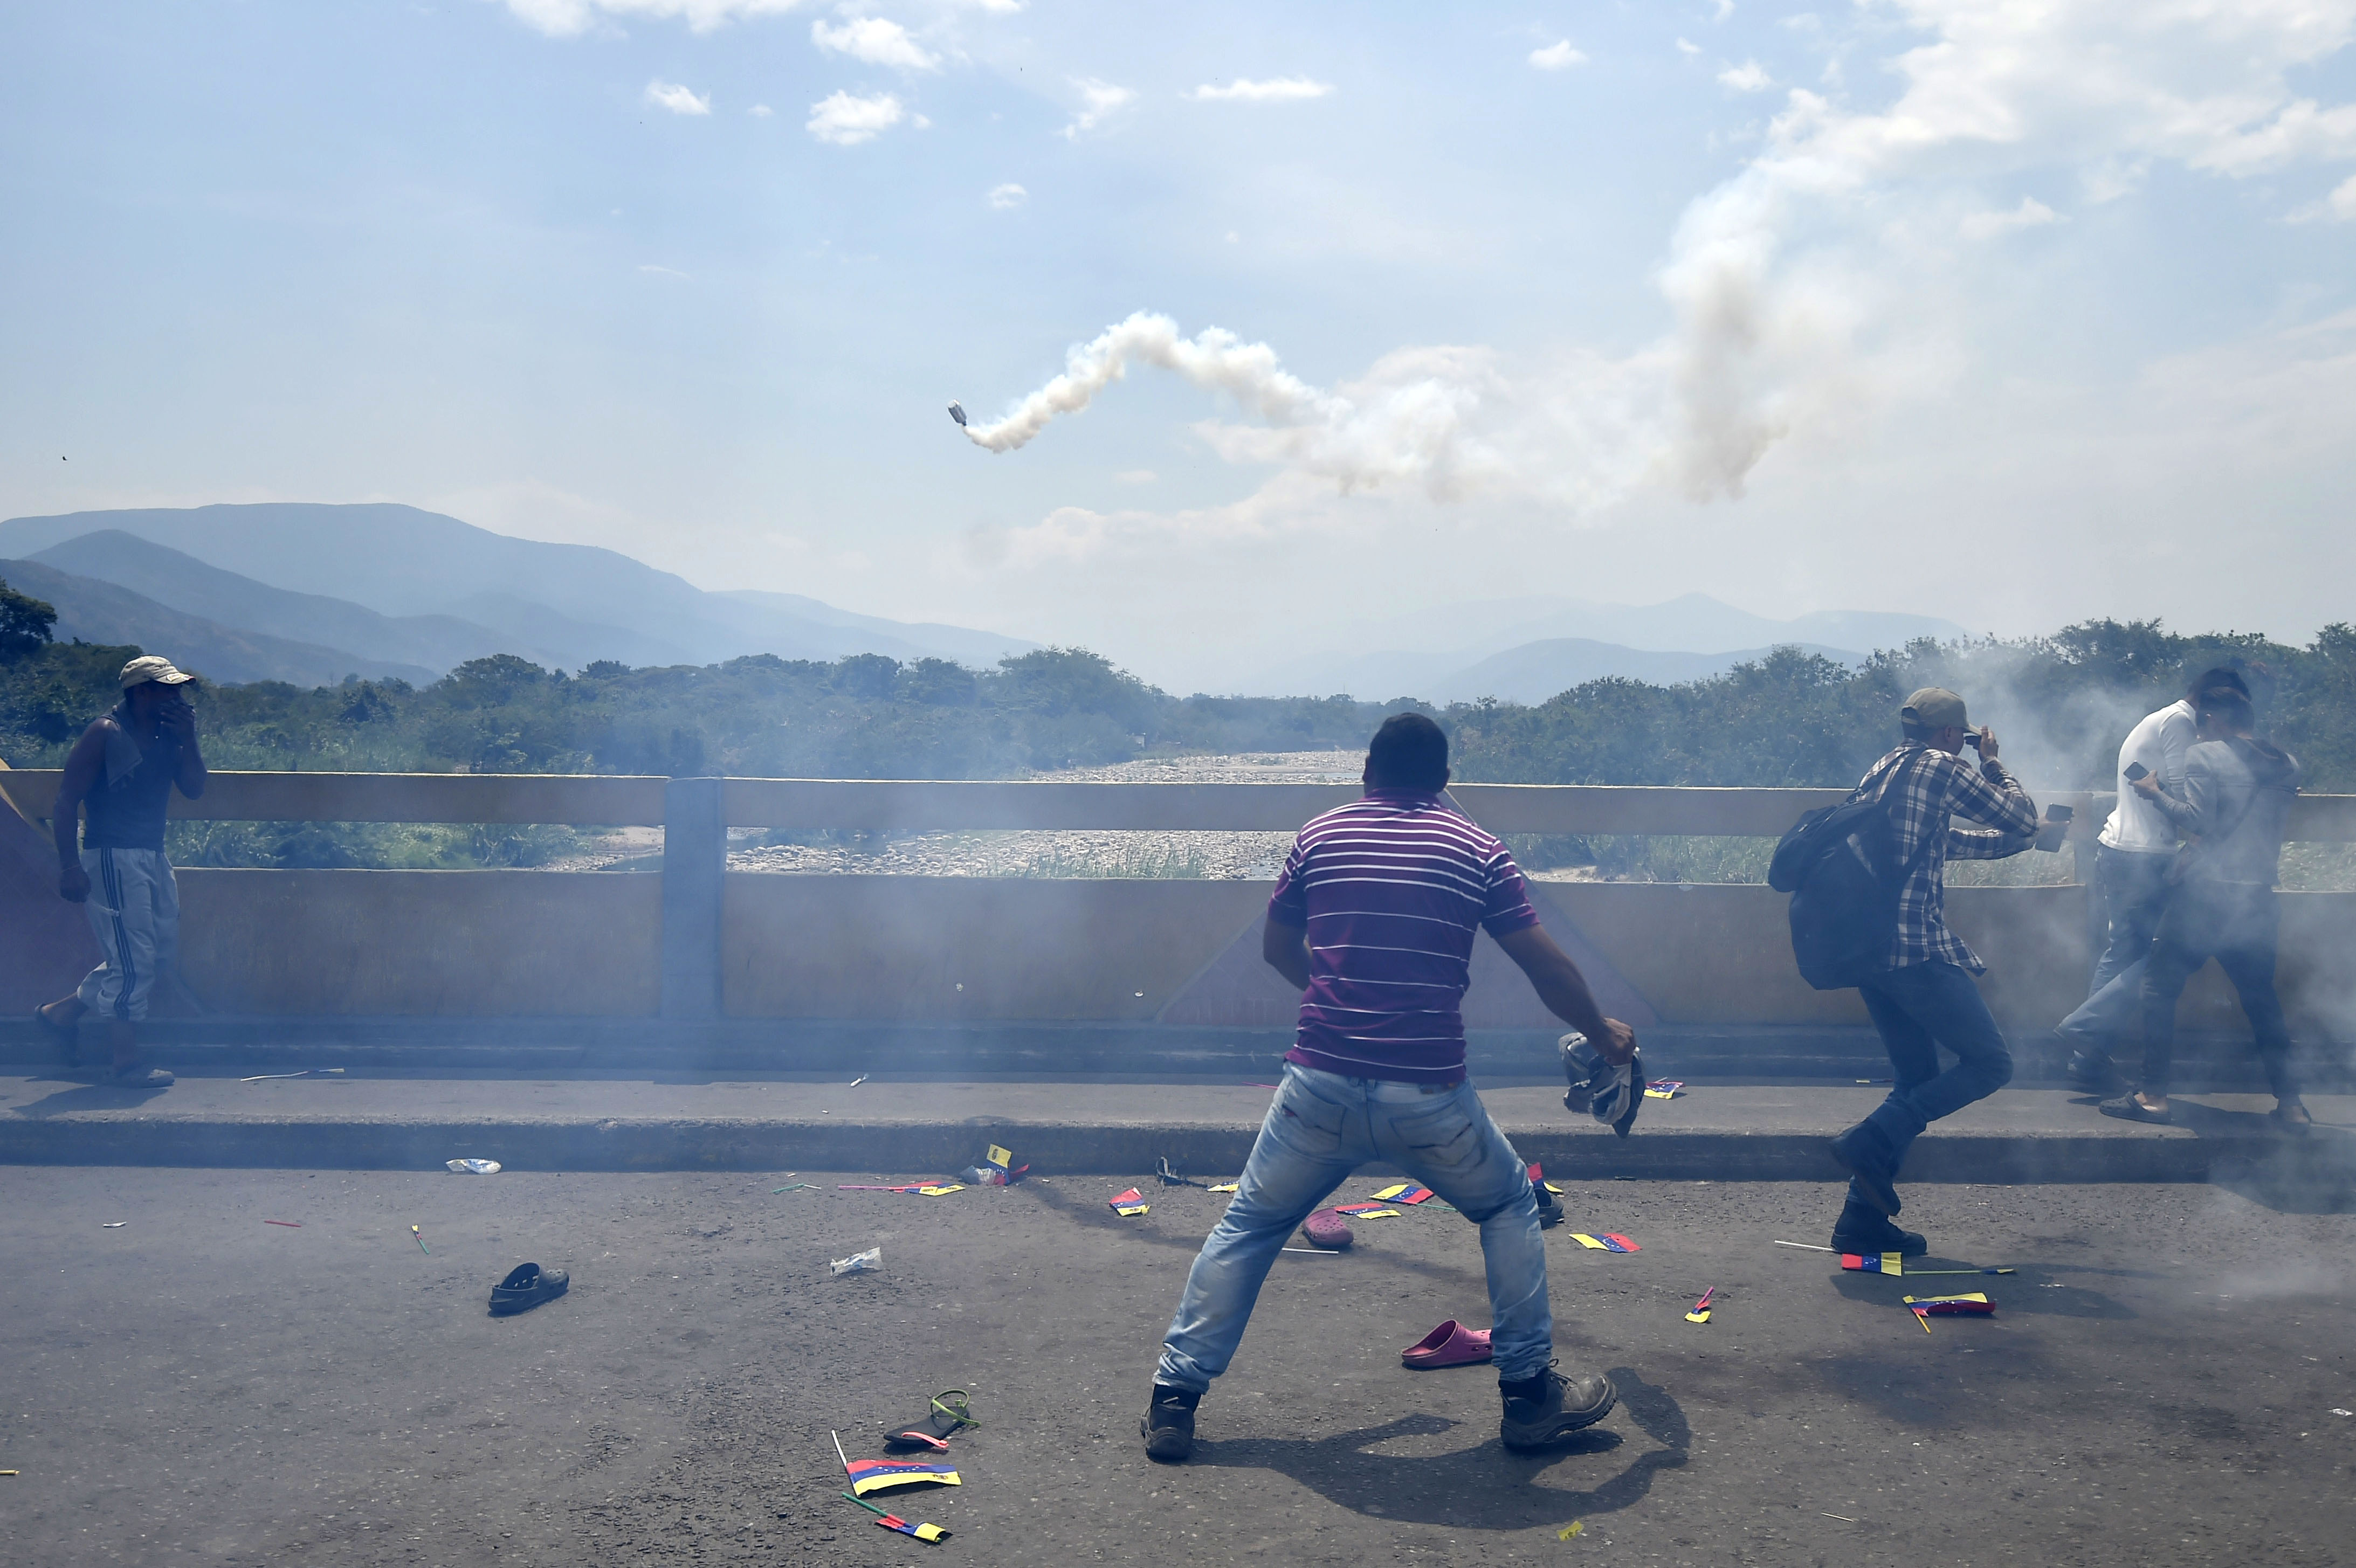 How the Venezuela crisis is unfolding, in images - The Washington Post